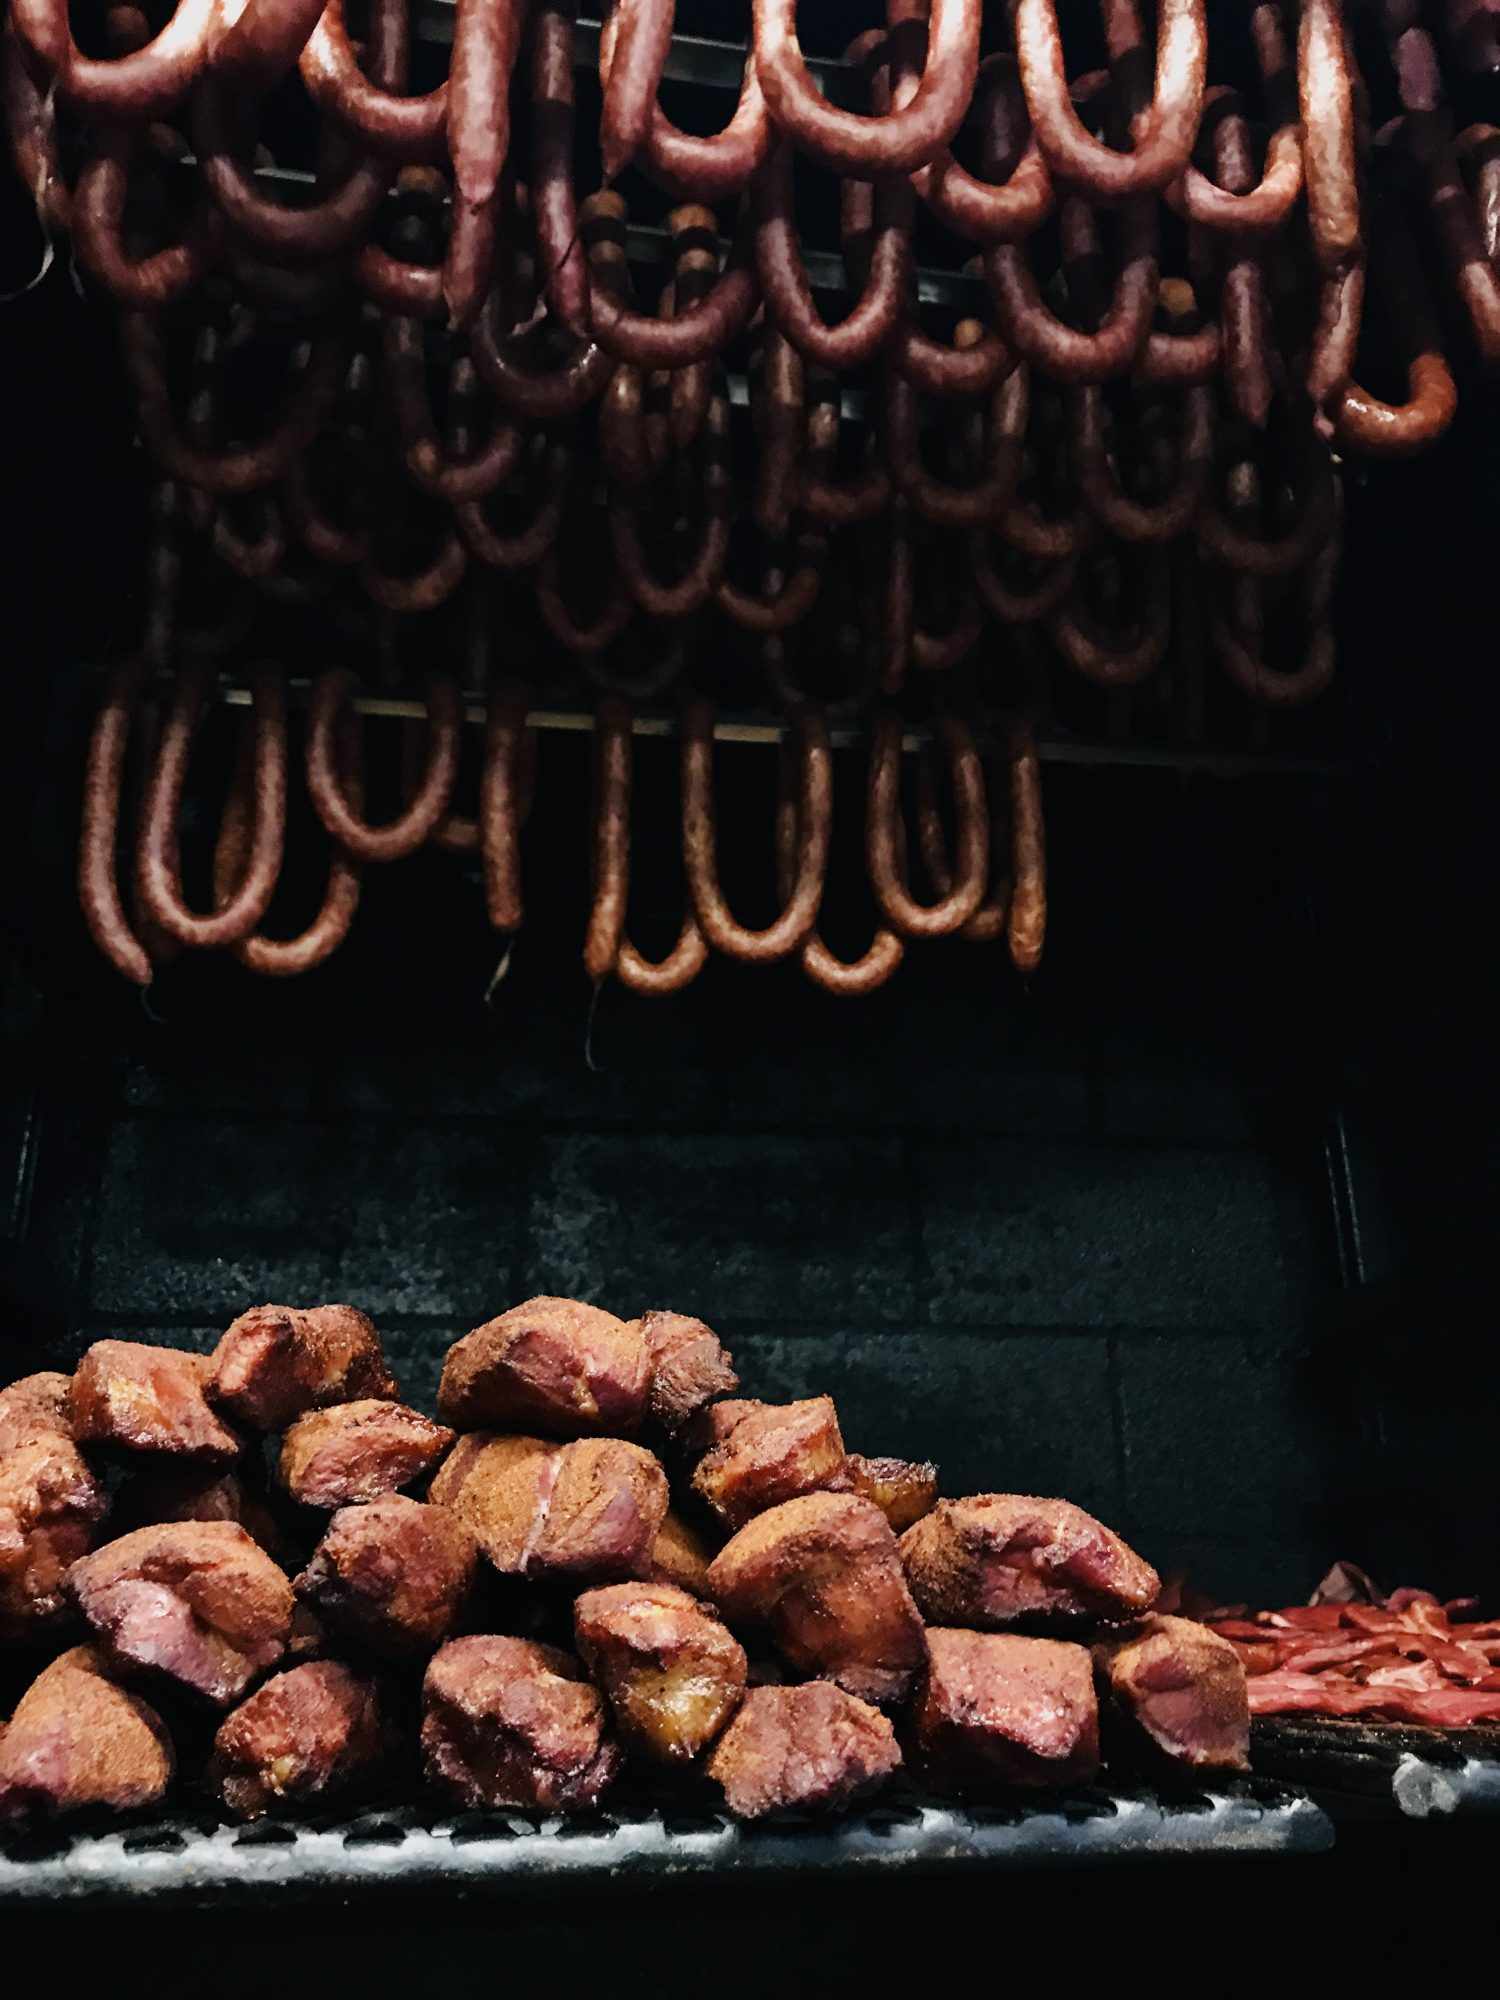 Louisiana: Barbecue and Boudin